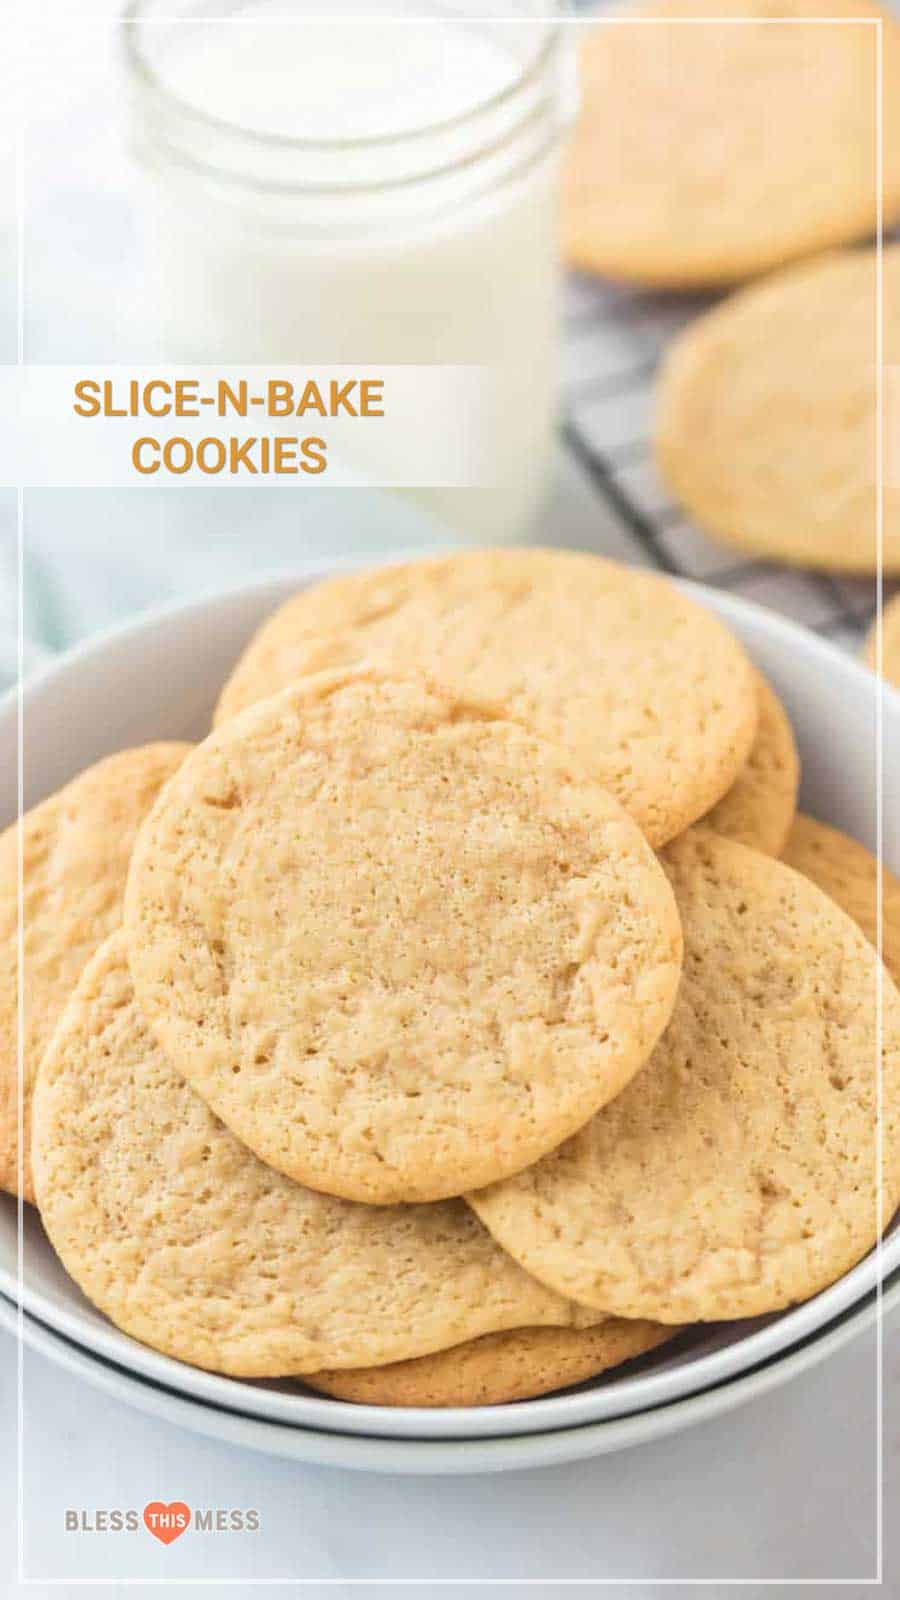 These simple, rich, and buttery slice and bake cookies come together with such ease -- just make the dough, slice it, and bake it! The dough is the best to have on hand for a quick and easy dessert, because freshly baked cookies are always a good idea (and don't need to take a ton of time!). #sliceandbakecookies #slicenbakecookies #sliceandbakecookiedough #homemadesliceandbakecookies #cookies #cookiedough #cookierecipe